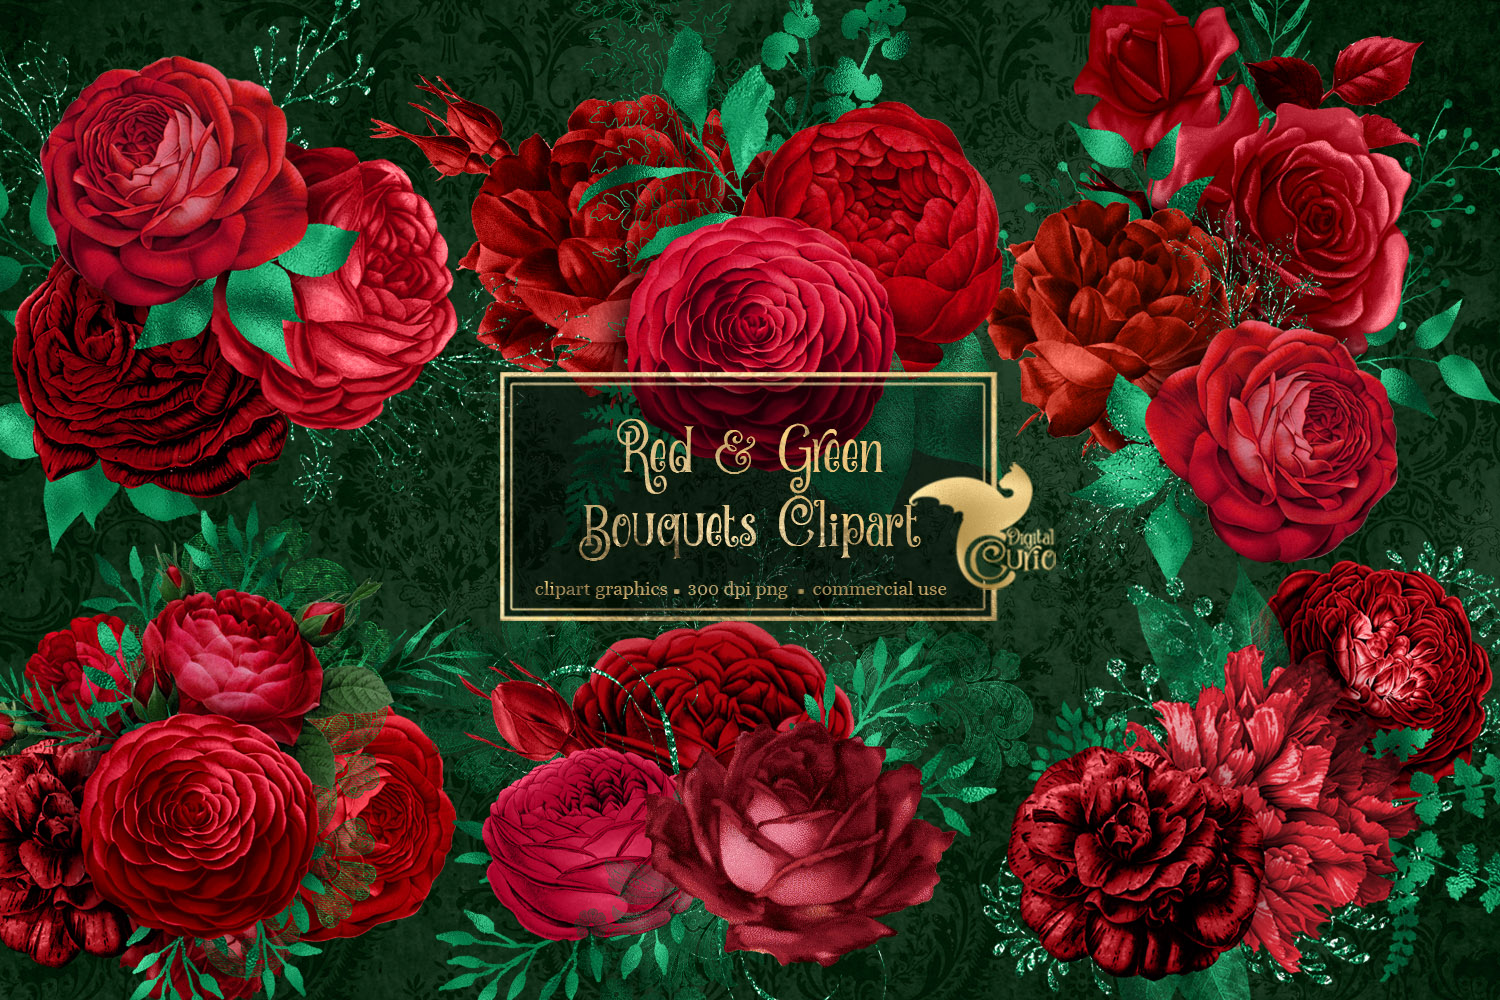 Red and Green Bouquets Clipart example image 2